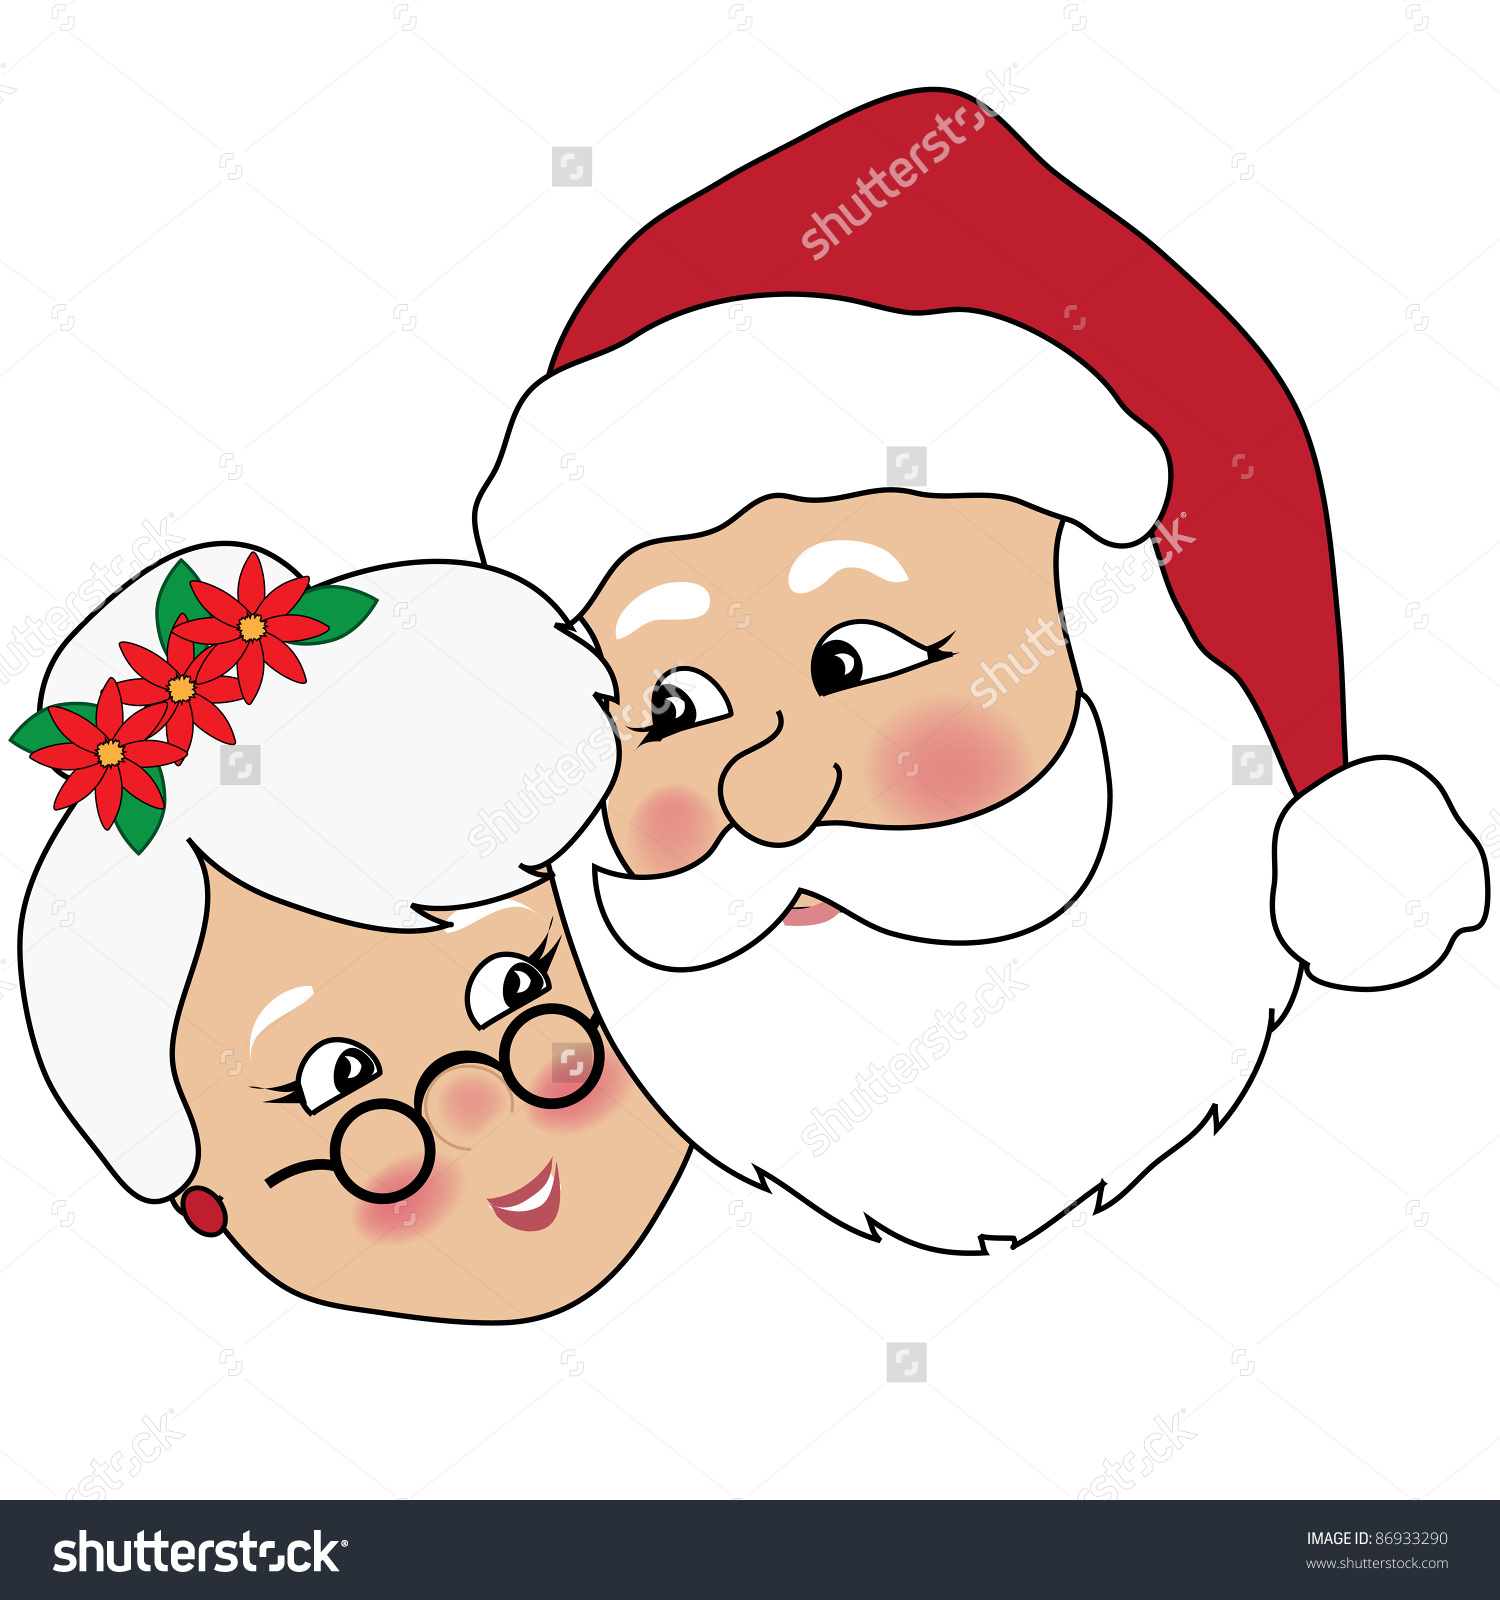 Clip Art Illustration Of Mr And Mrs Clau-Clip art illustration of Mr and Mrs Claus cuddling.-4